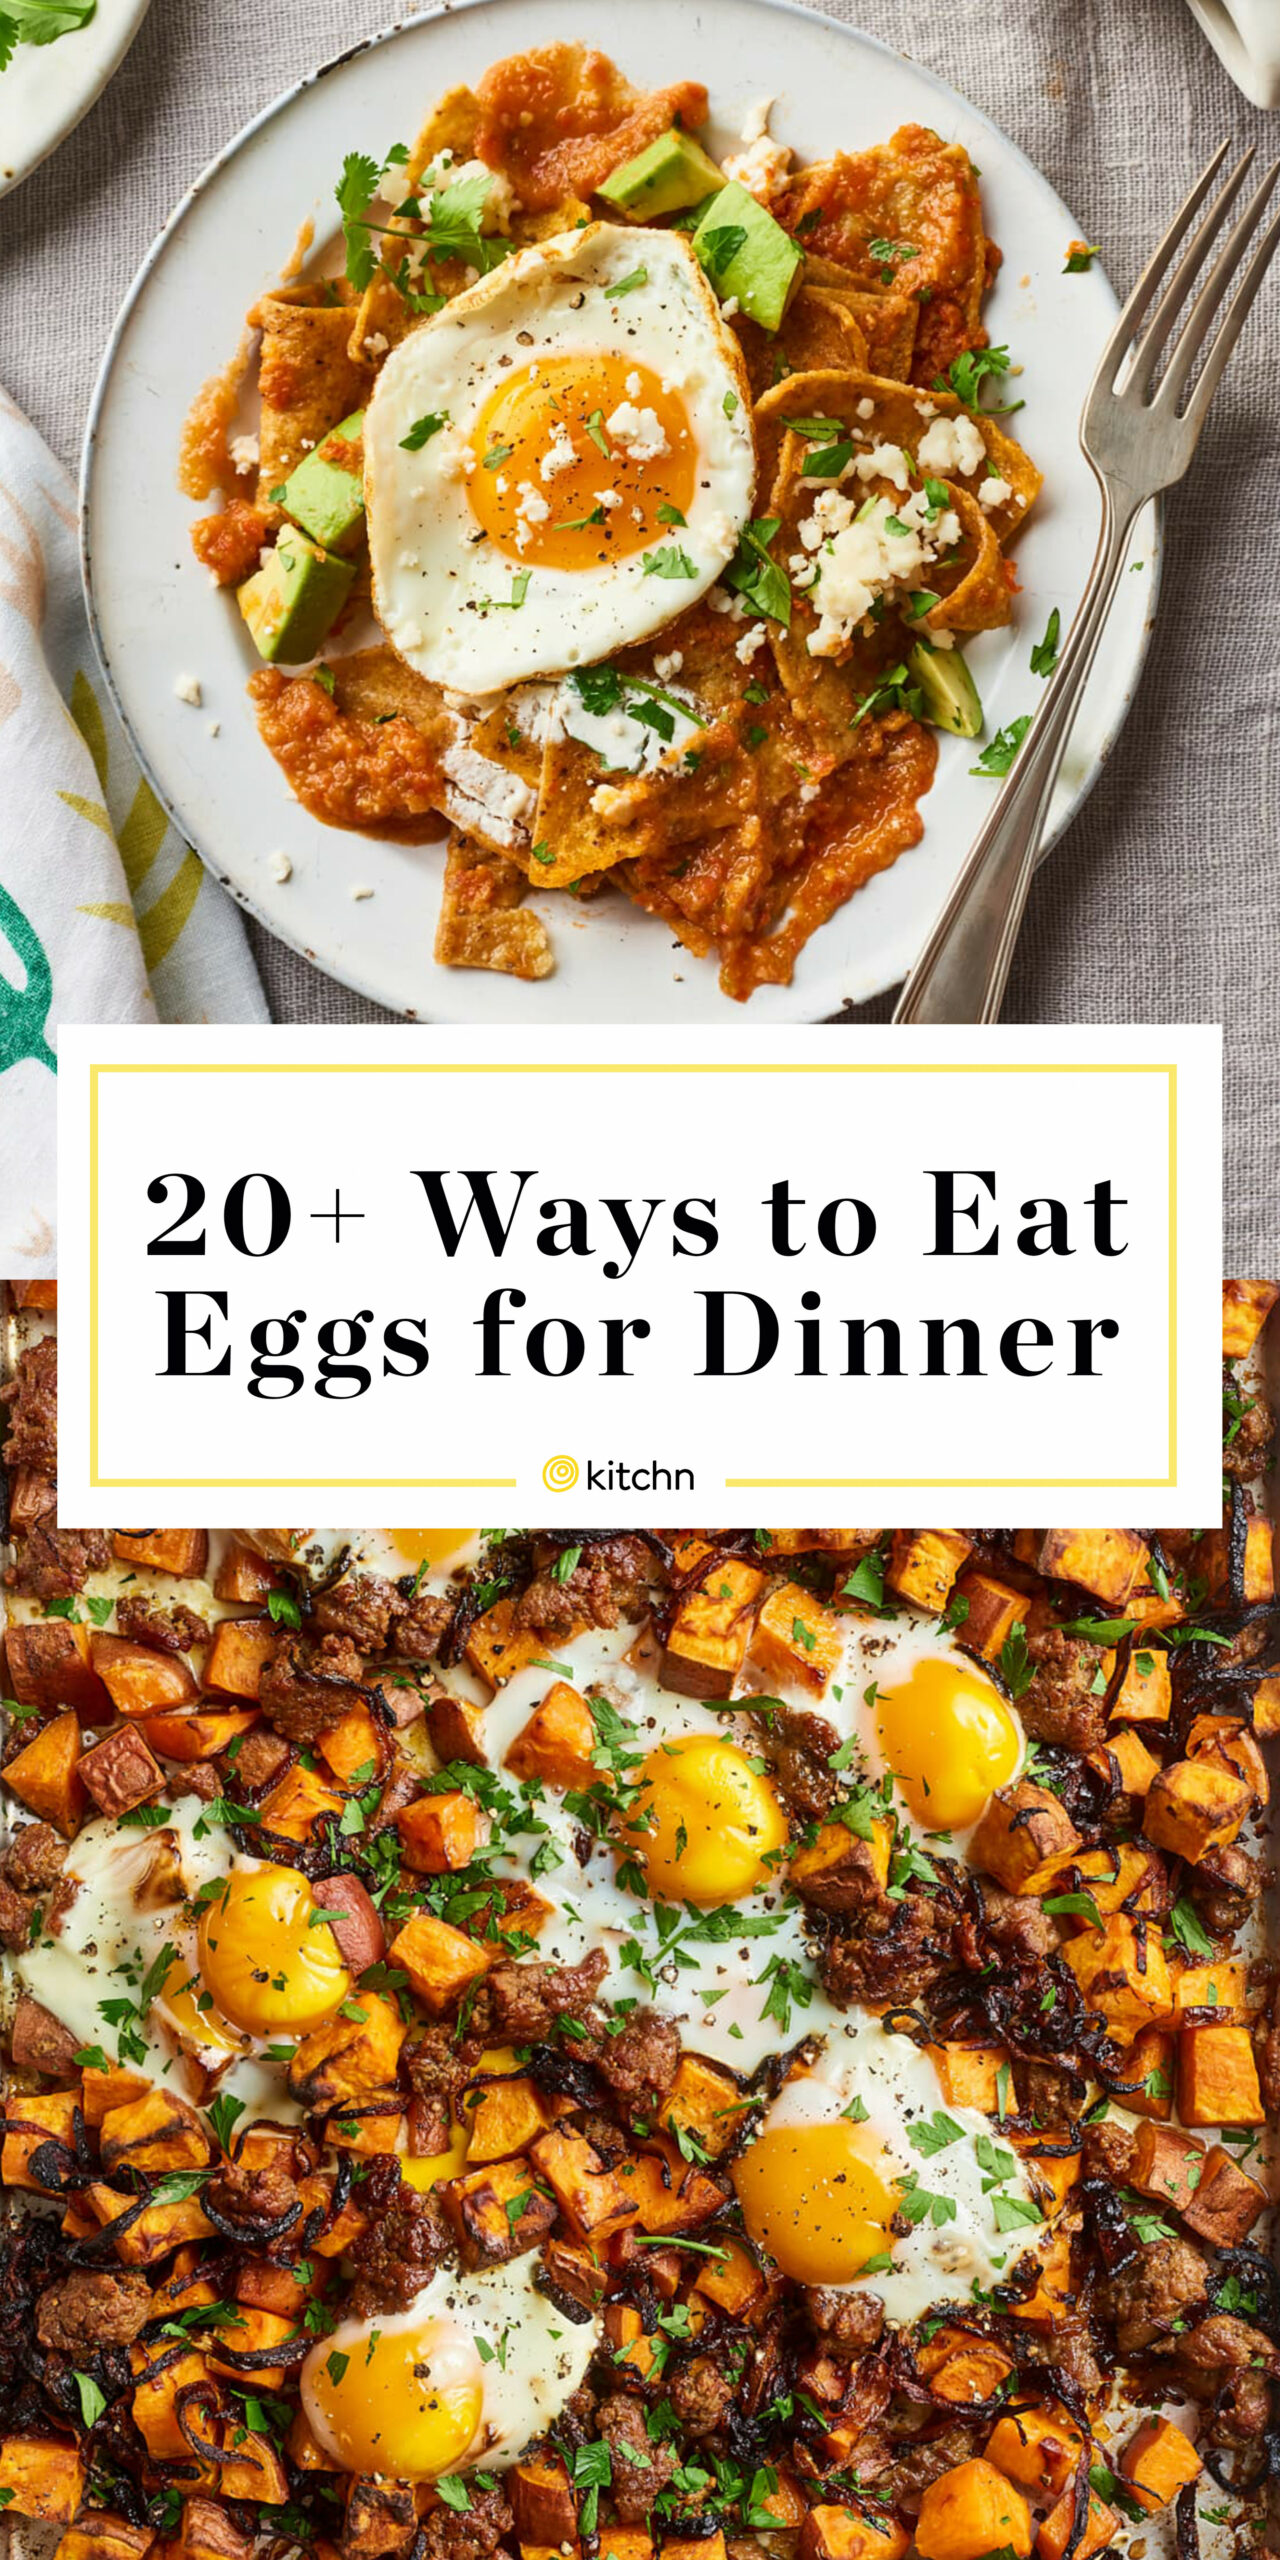 13 Delicious Ways to Eat Eggs for Dinner | Kitchn - recipes eggs for dinner